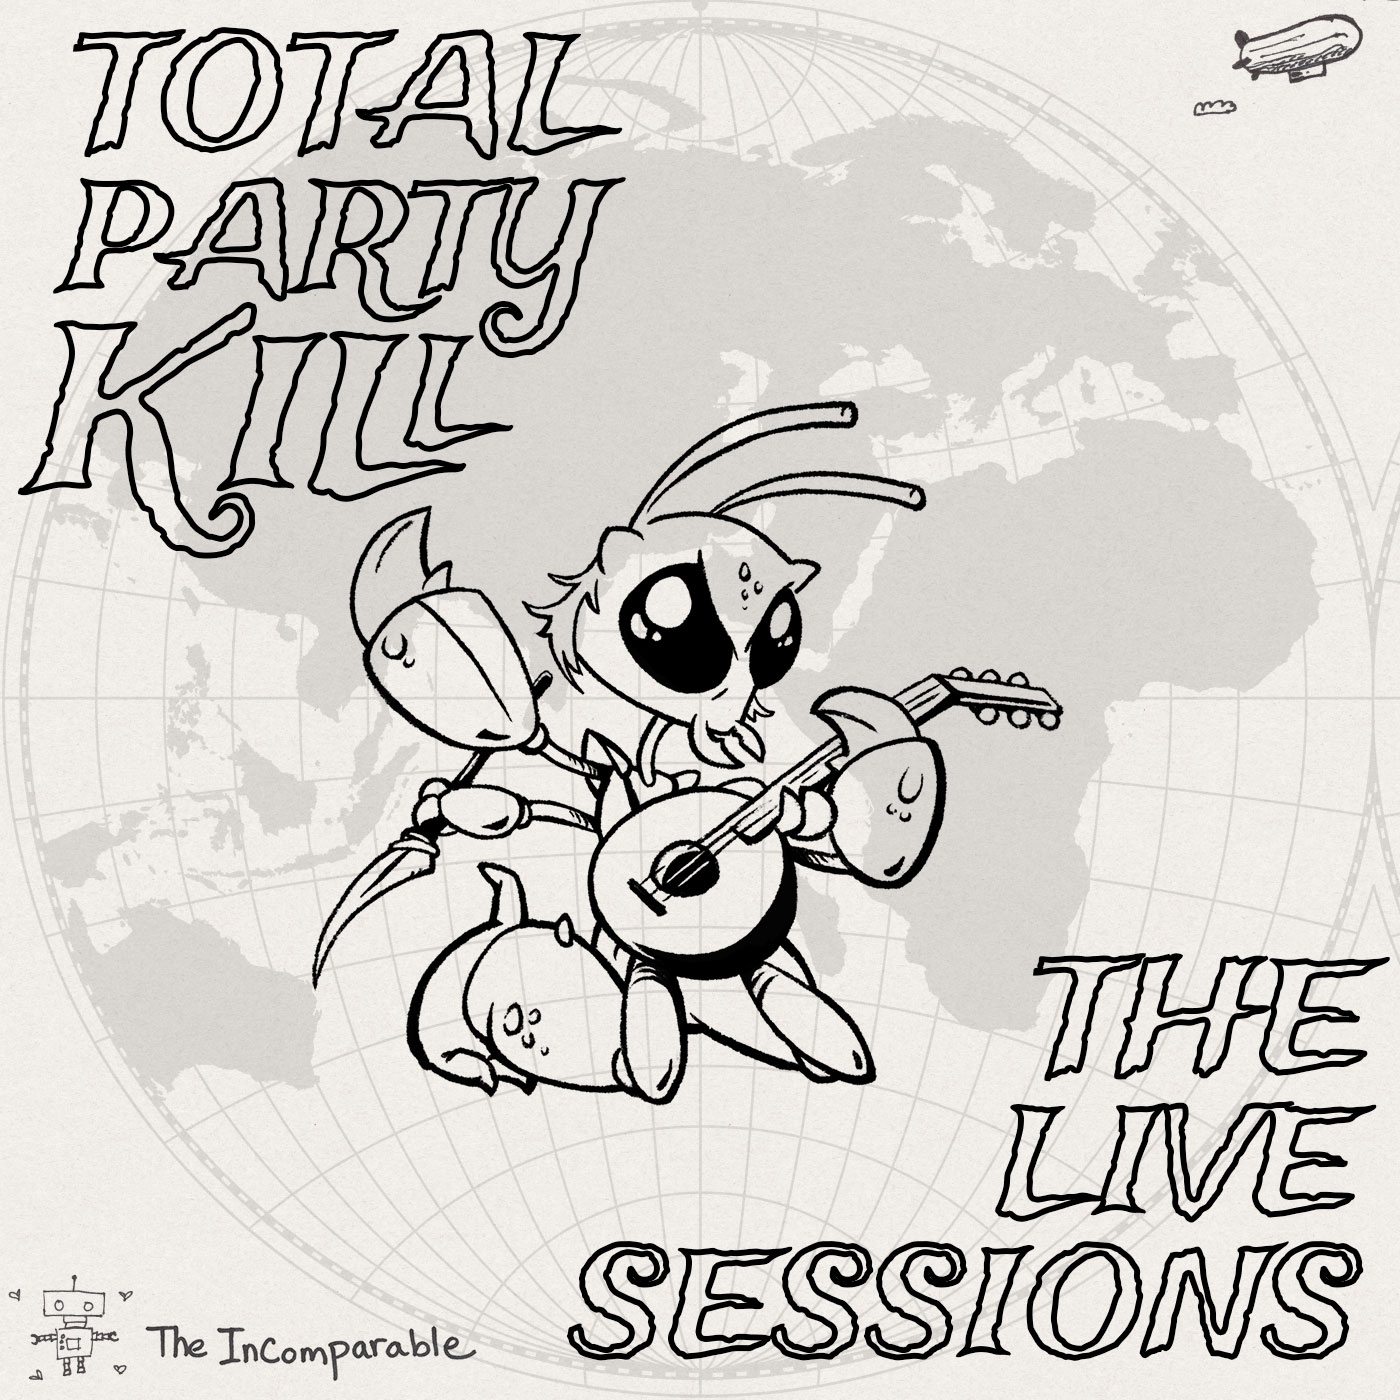 TPK - Video Live Sessions (Members Only)